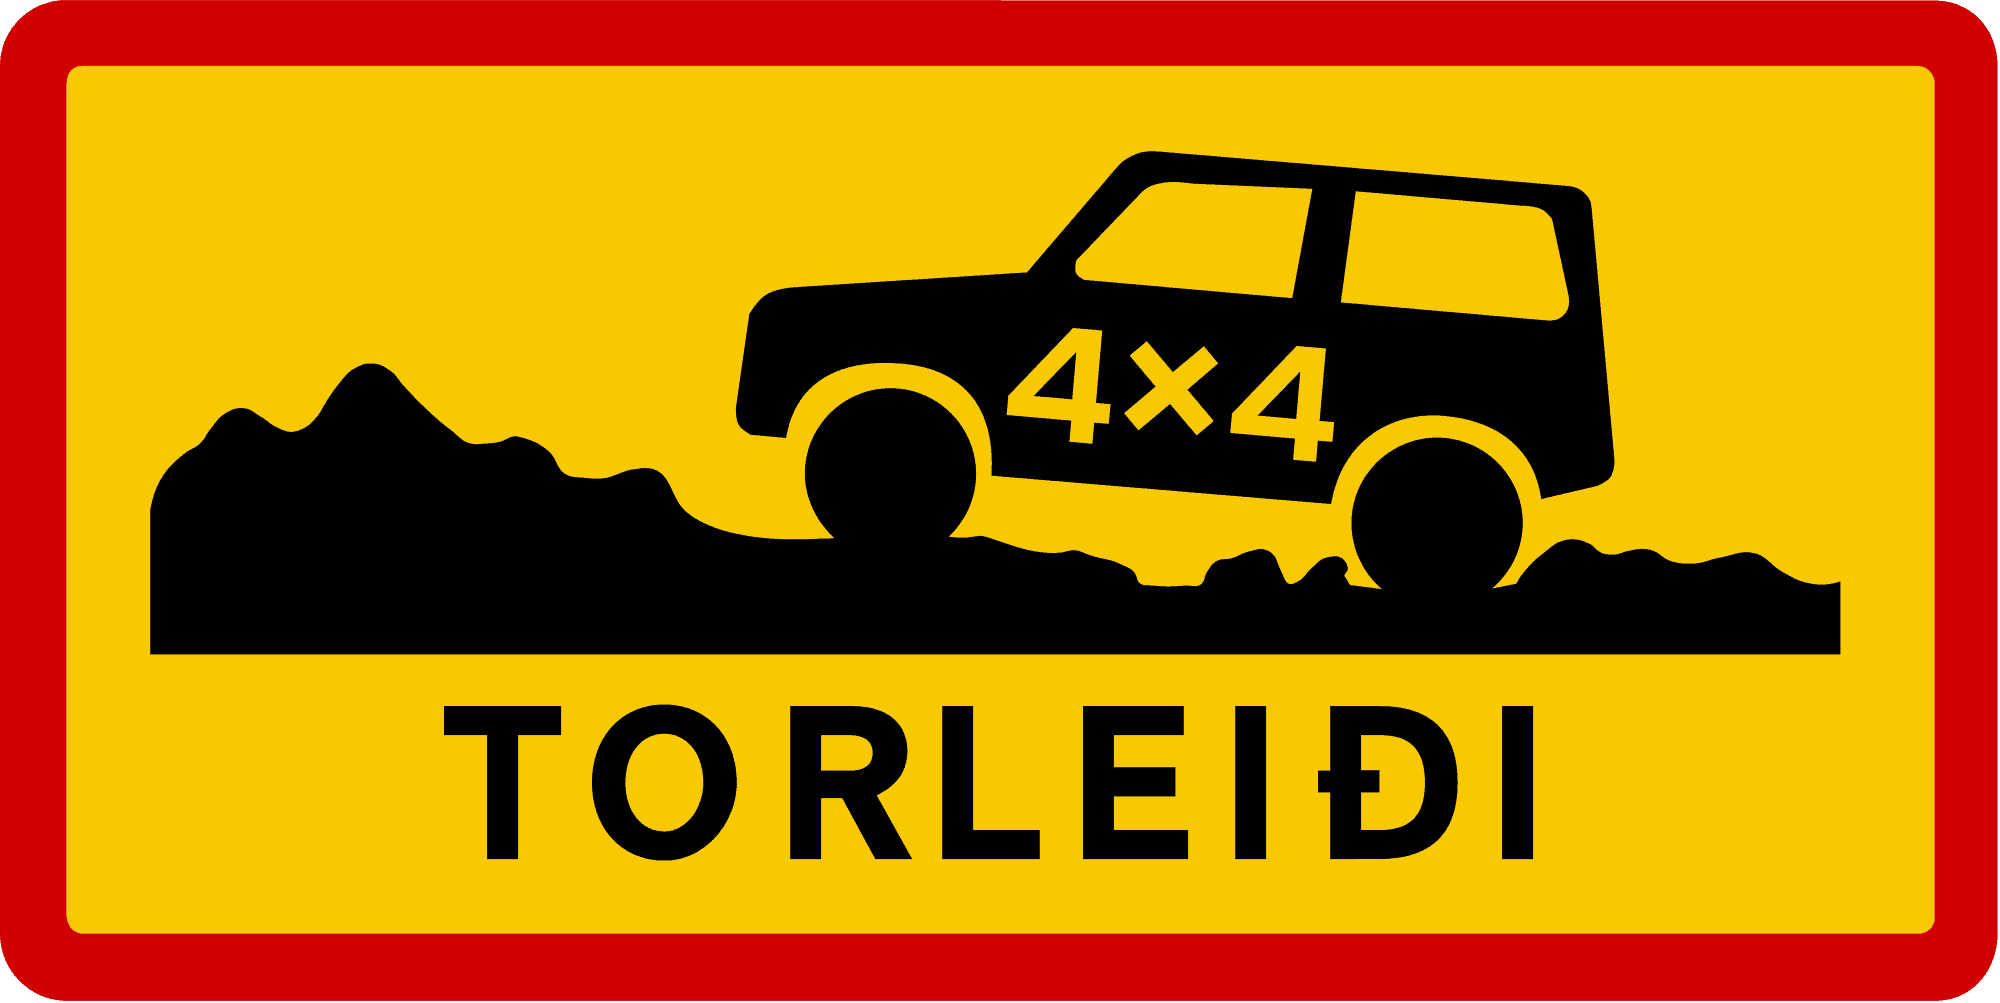 Iceland road sign Torleidi on F-roads